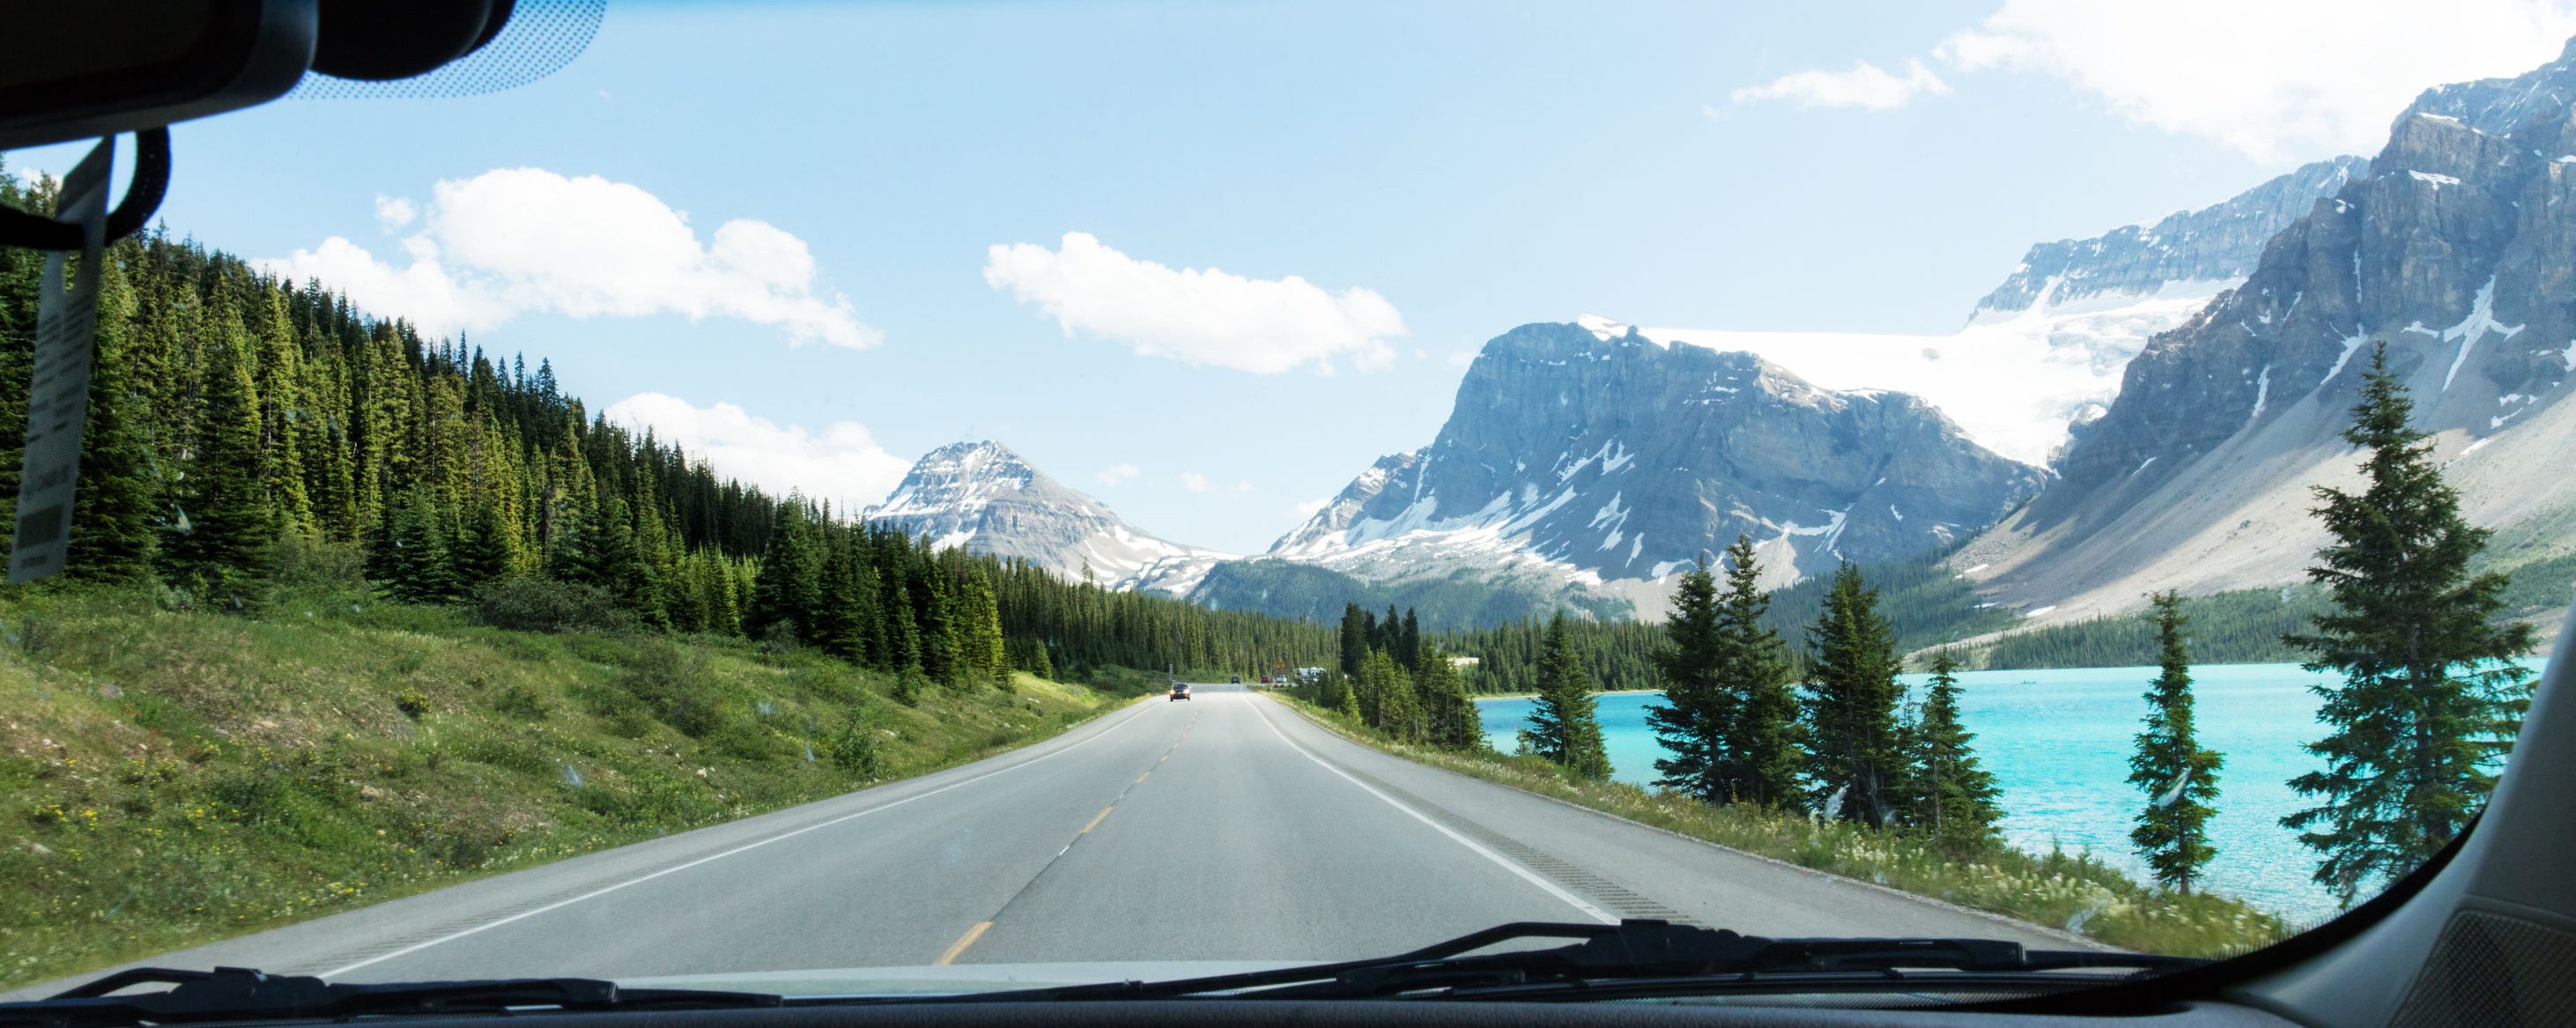 shot taken from inside a car looking out windshield while driving on a beautiful mountain lake road